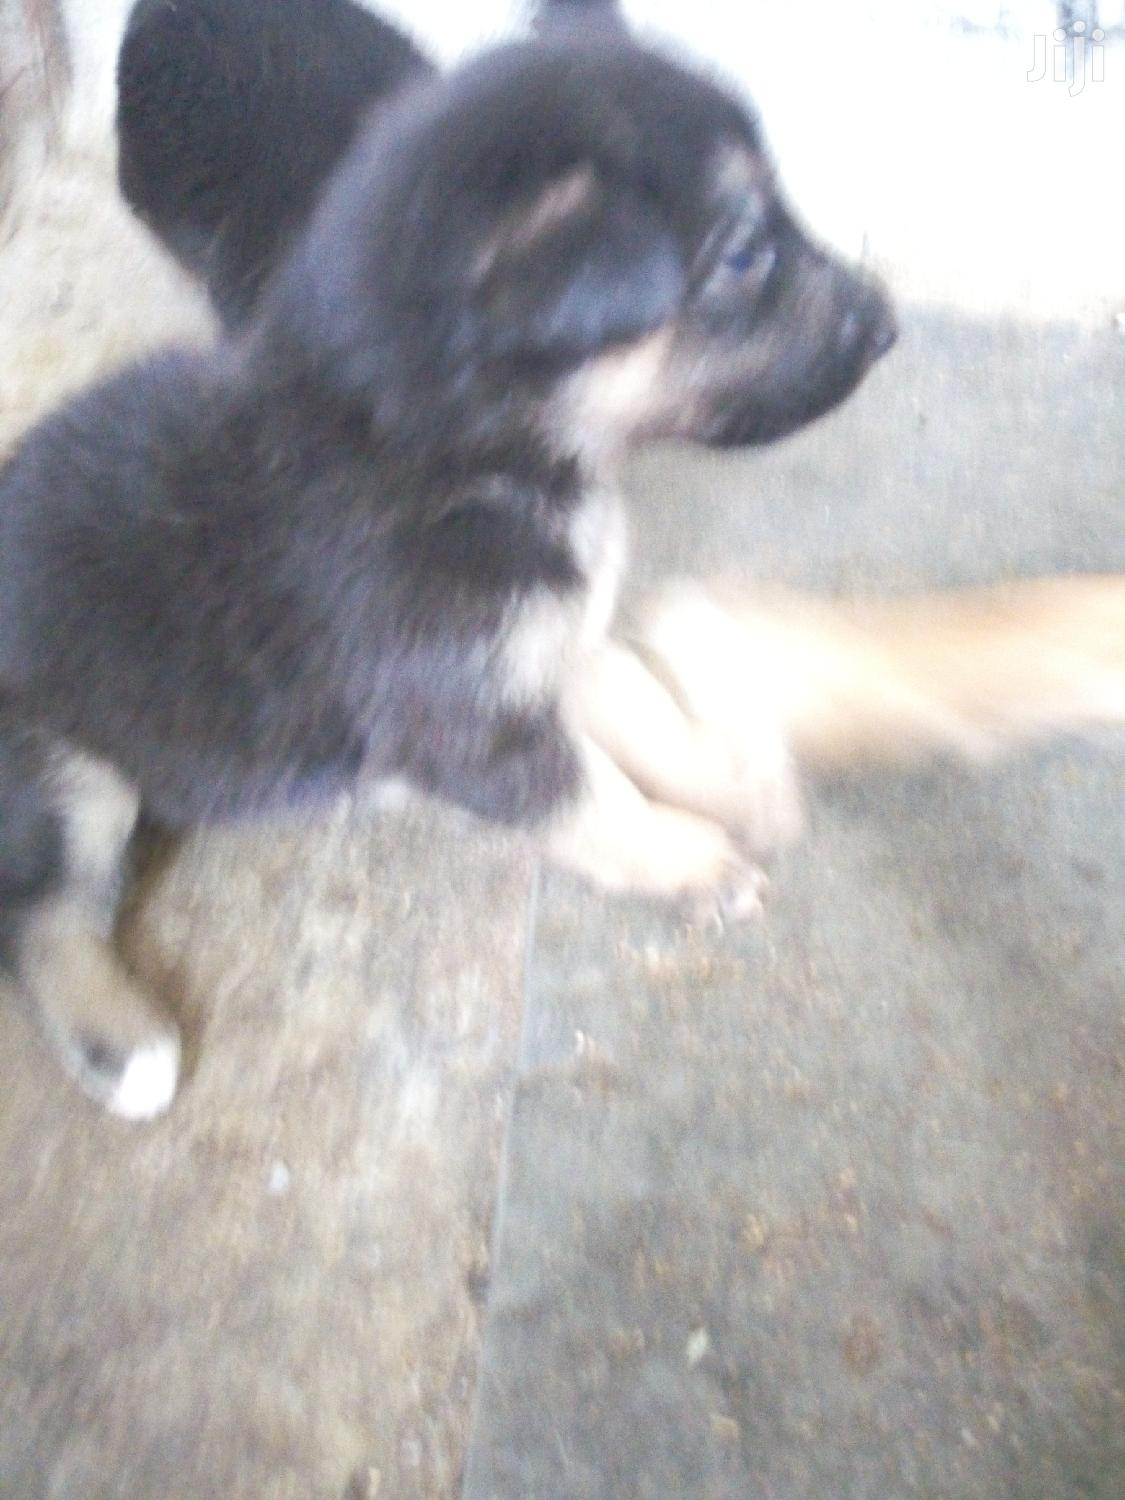 Archive: 0-1 Month Female Mixed Breed German Shepherd